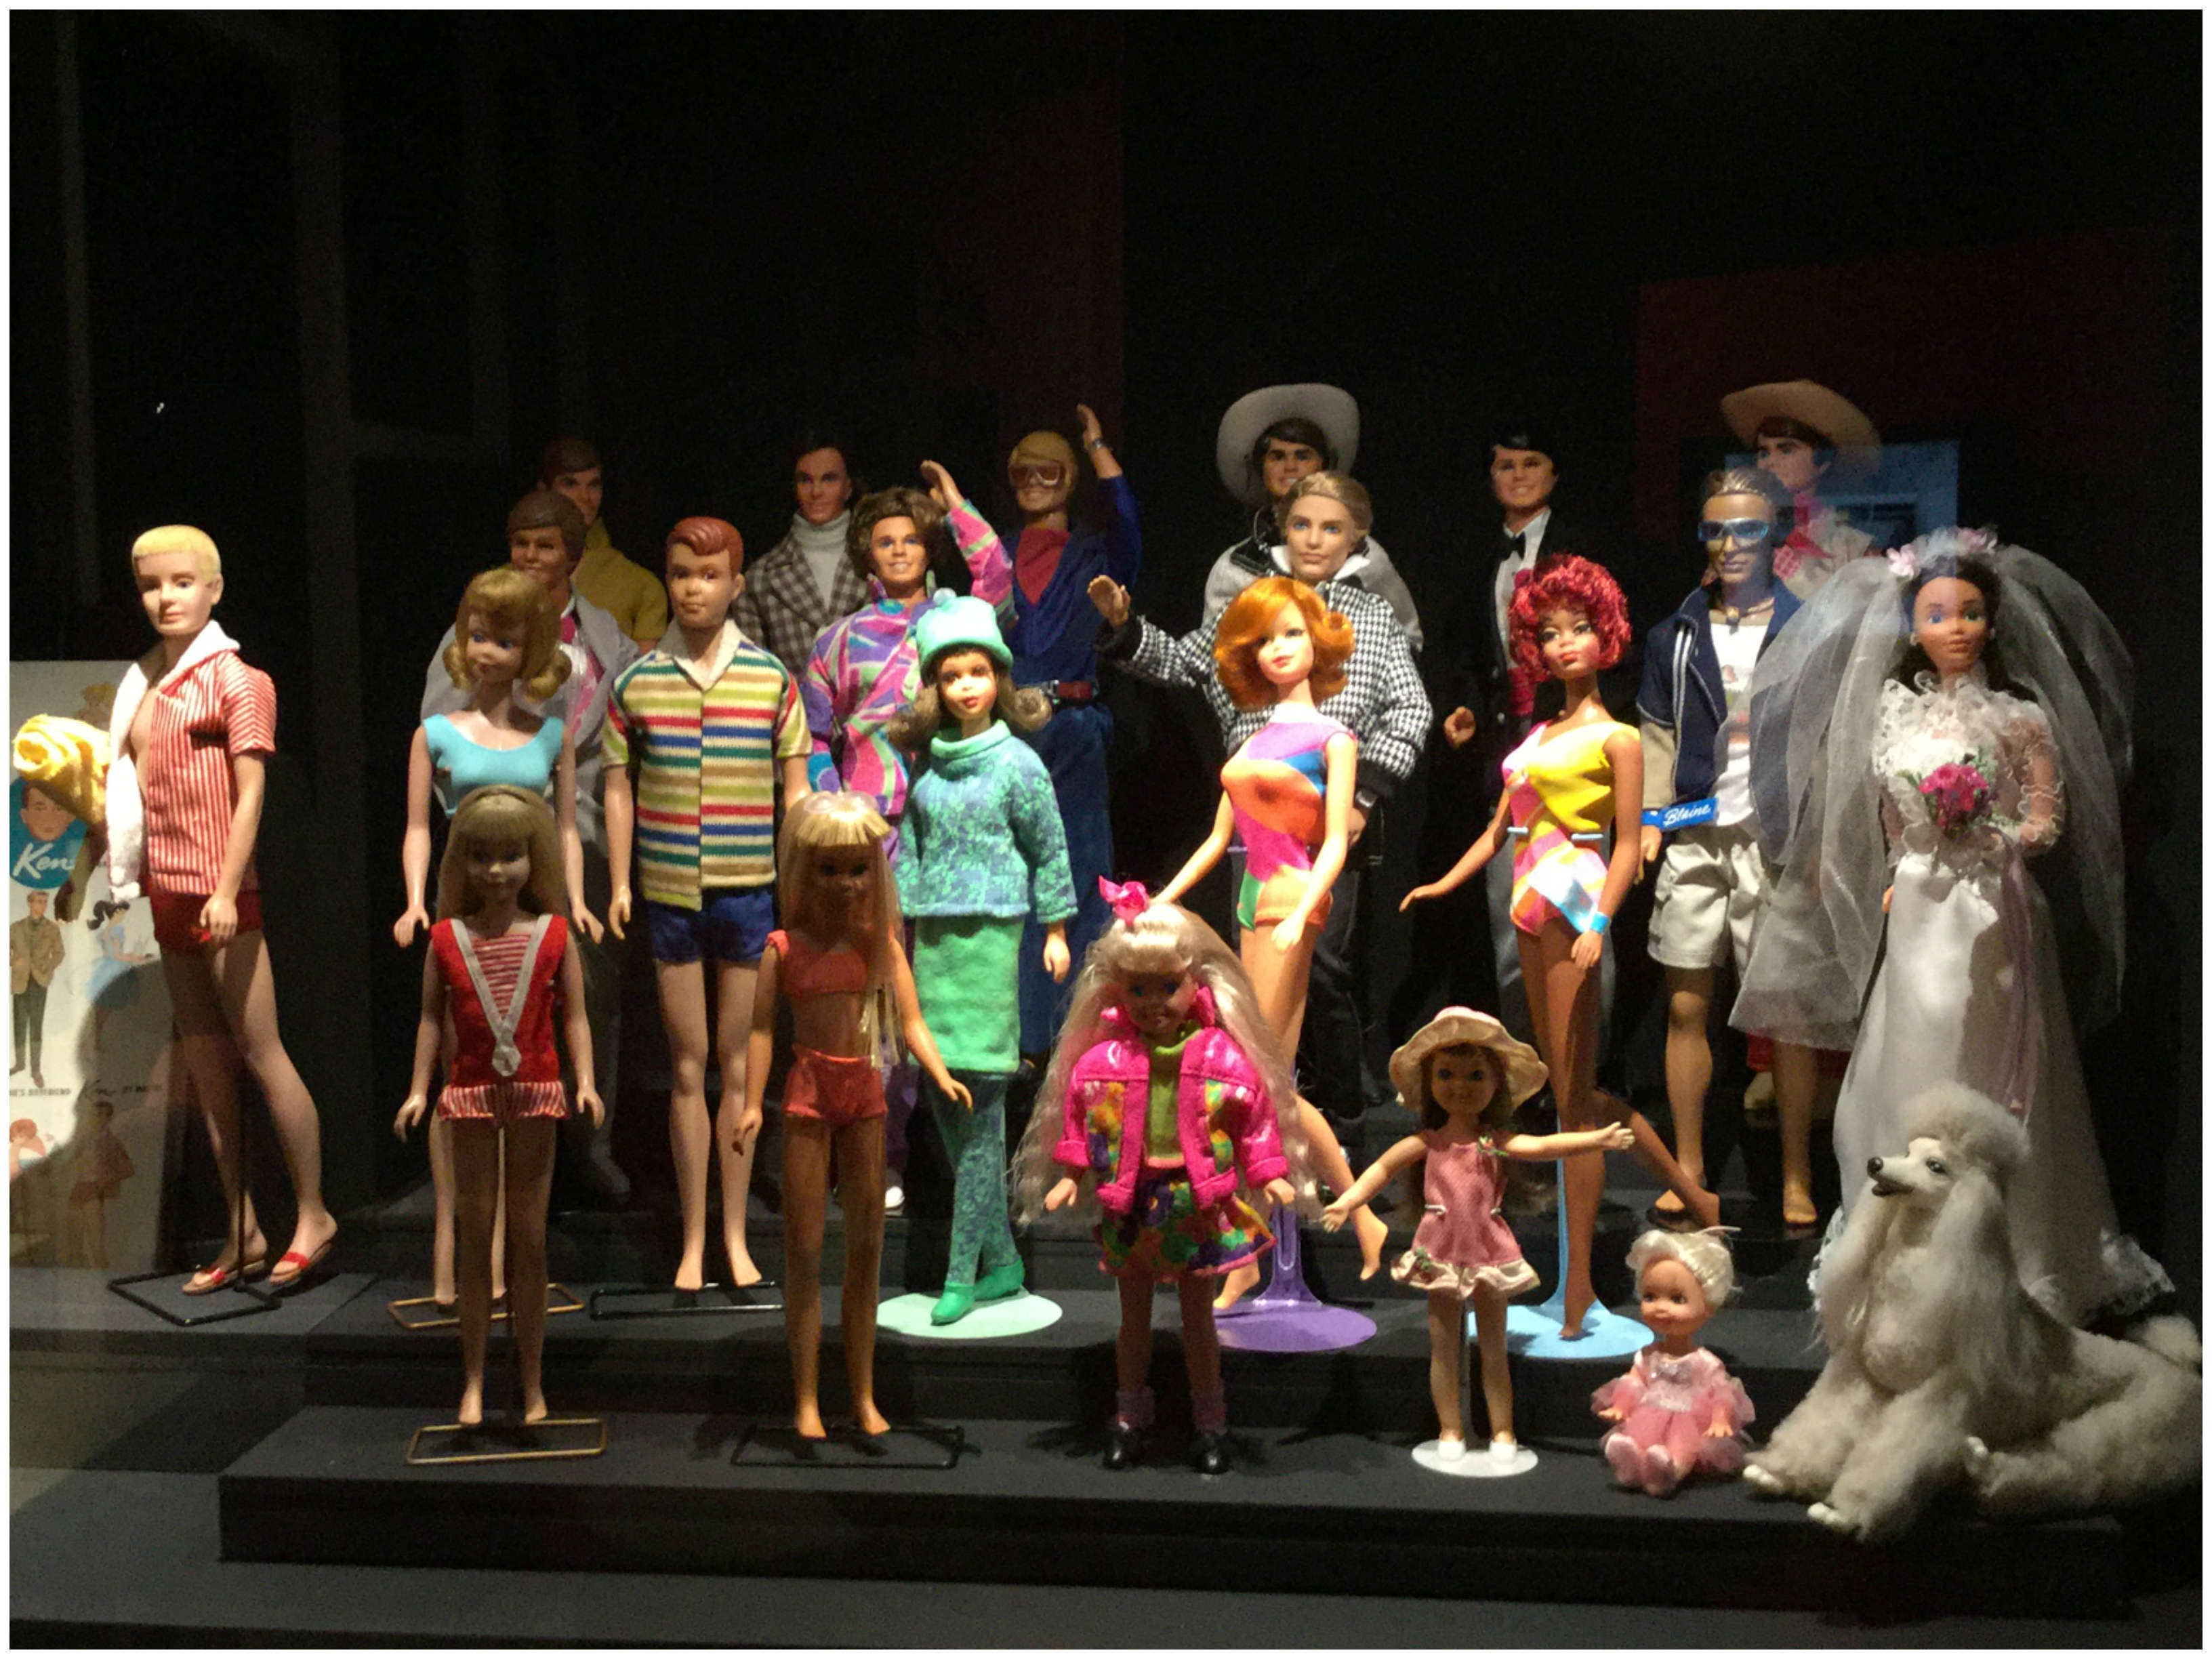 barbie-the-icon-mudec-27